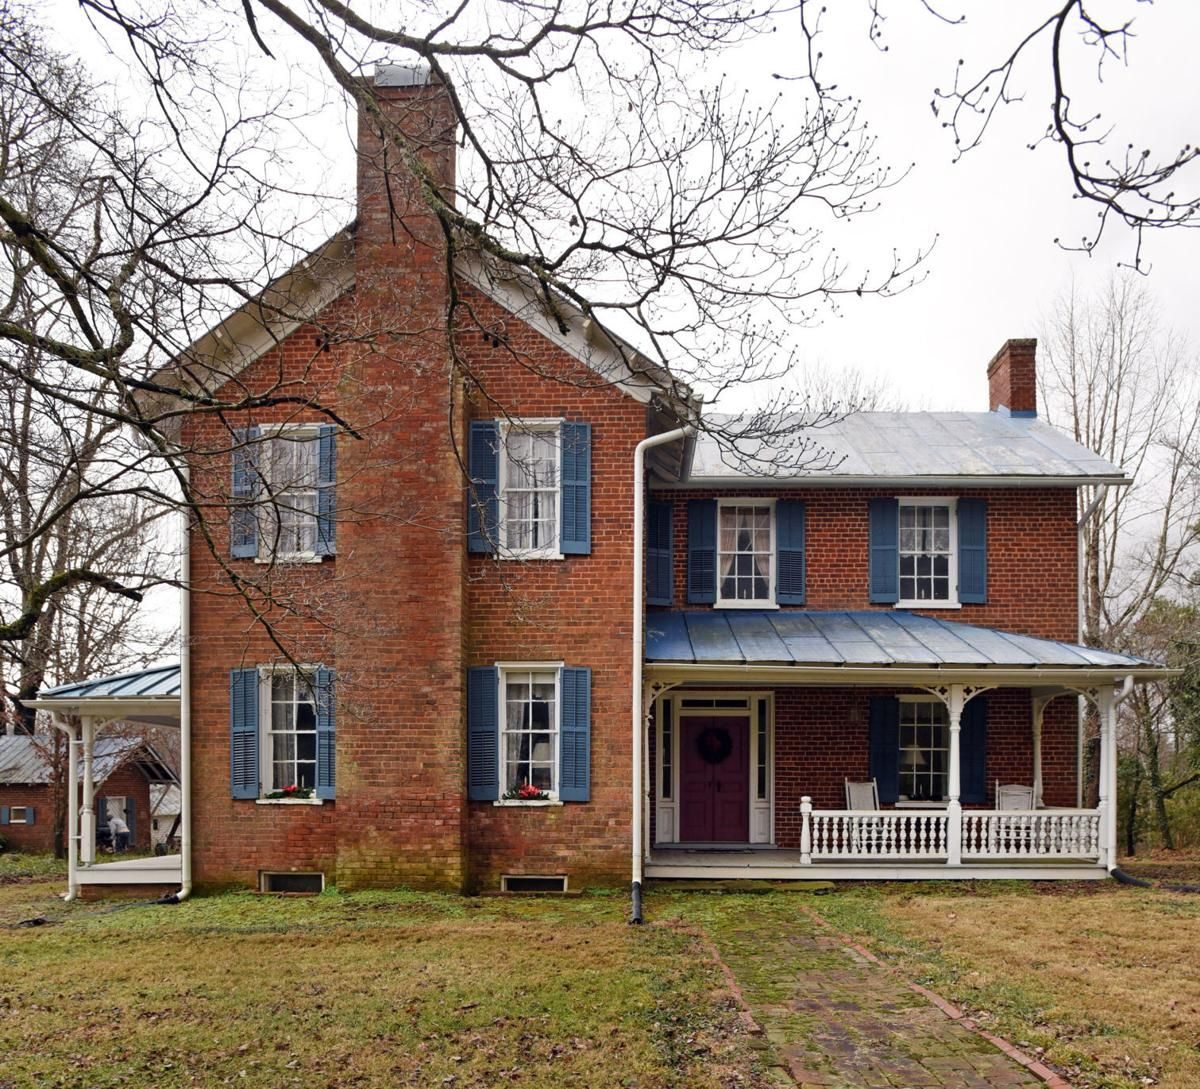 Historic farmhouse restoration planned for Speas home in western Forsyth